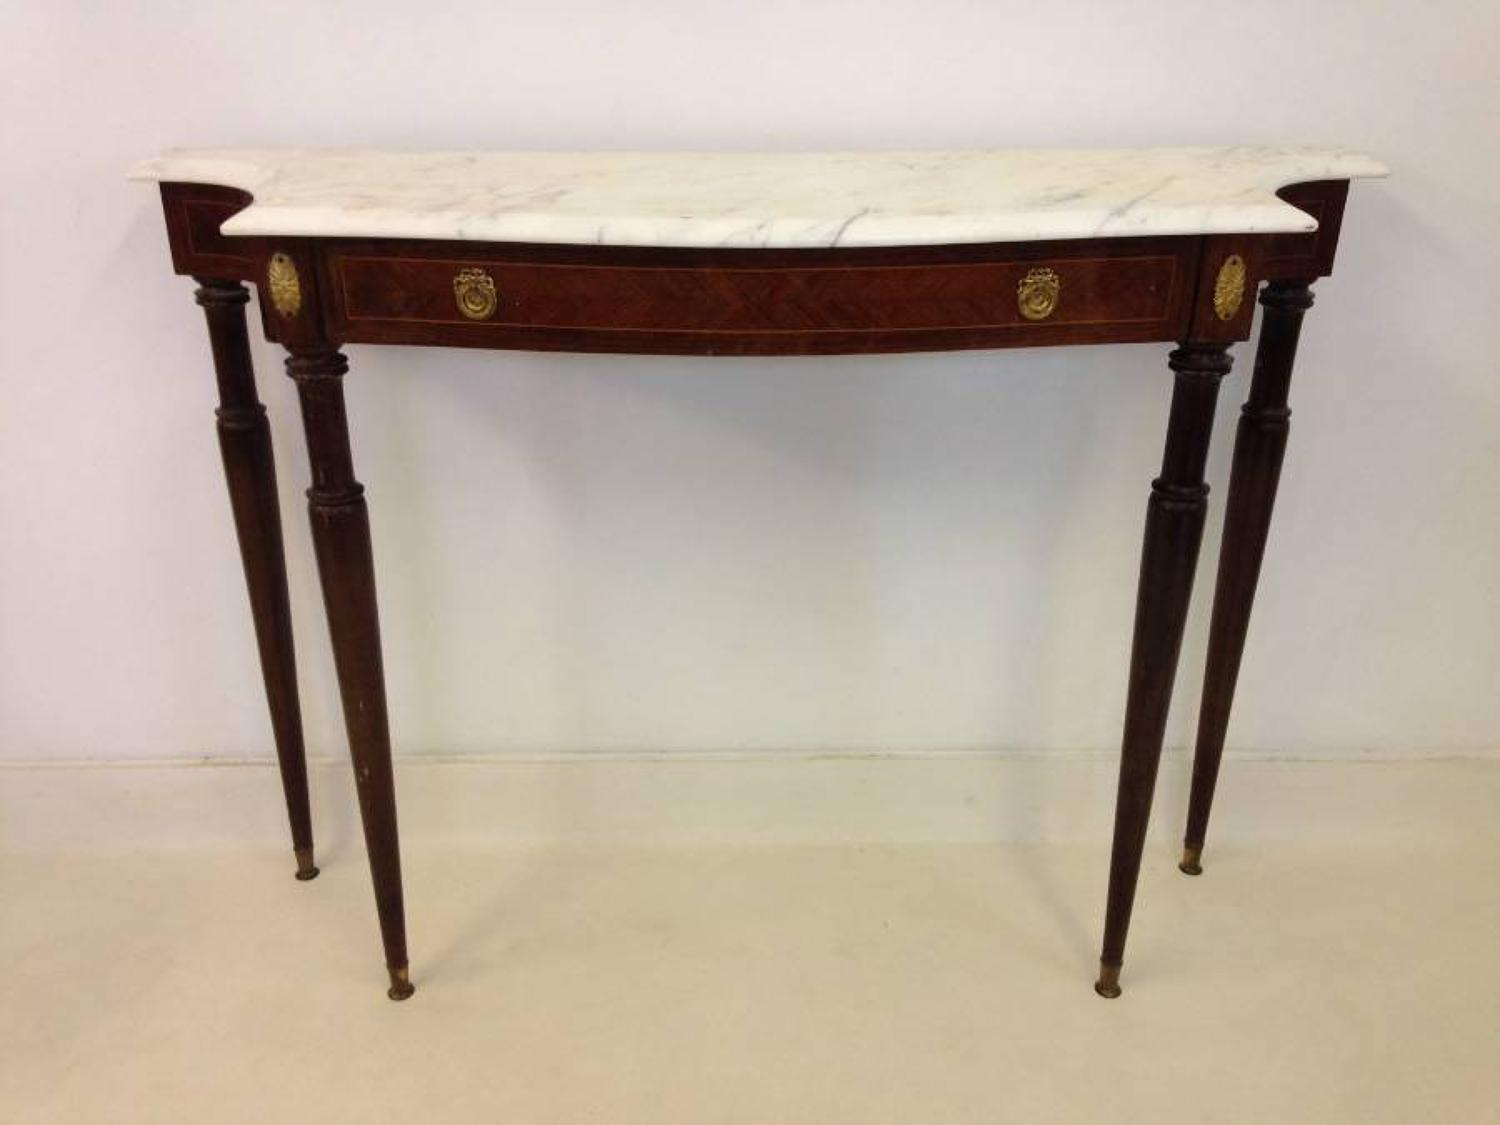 1950s Italian console table with marble